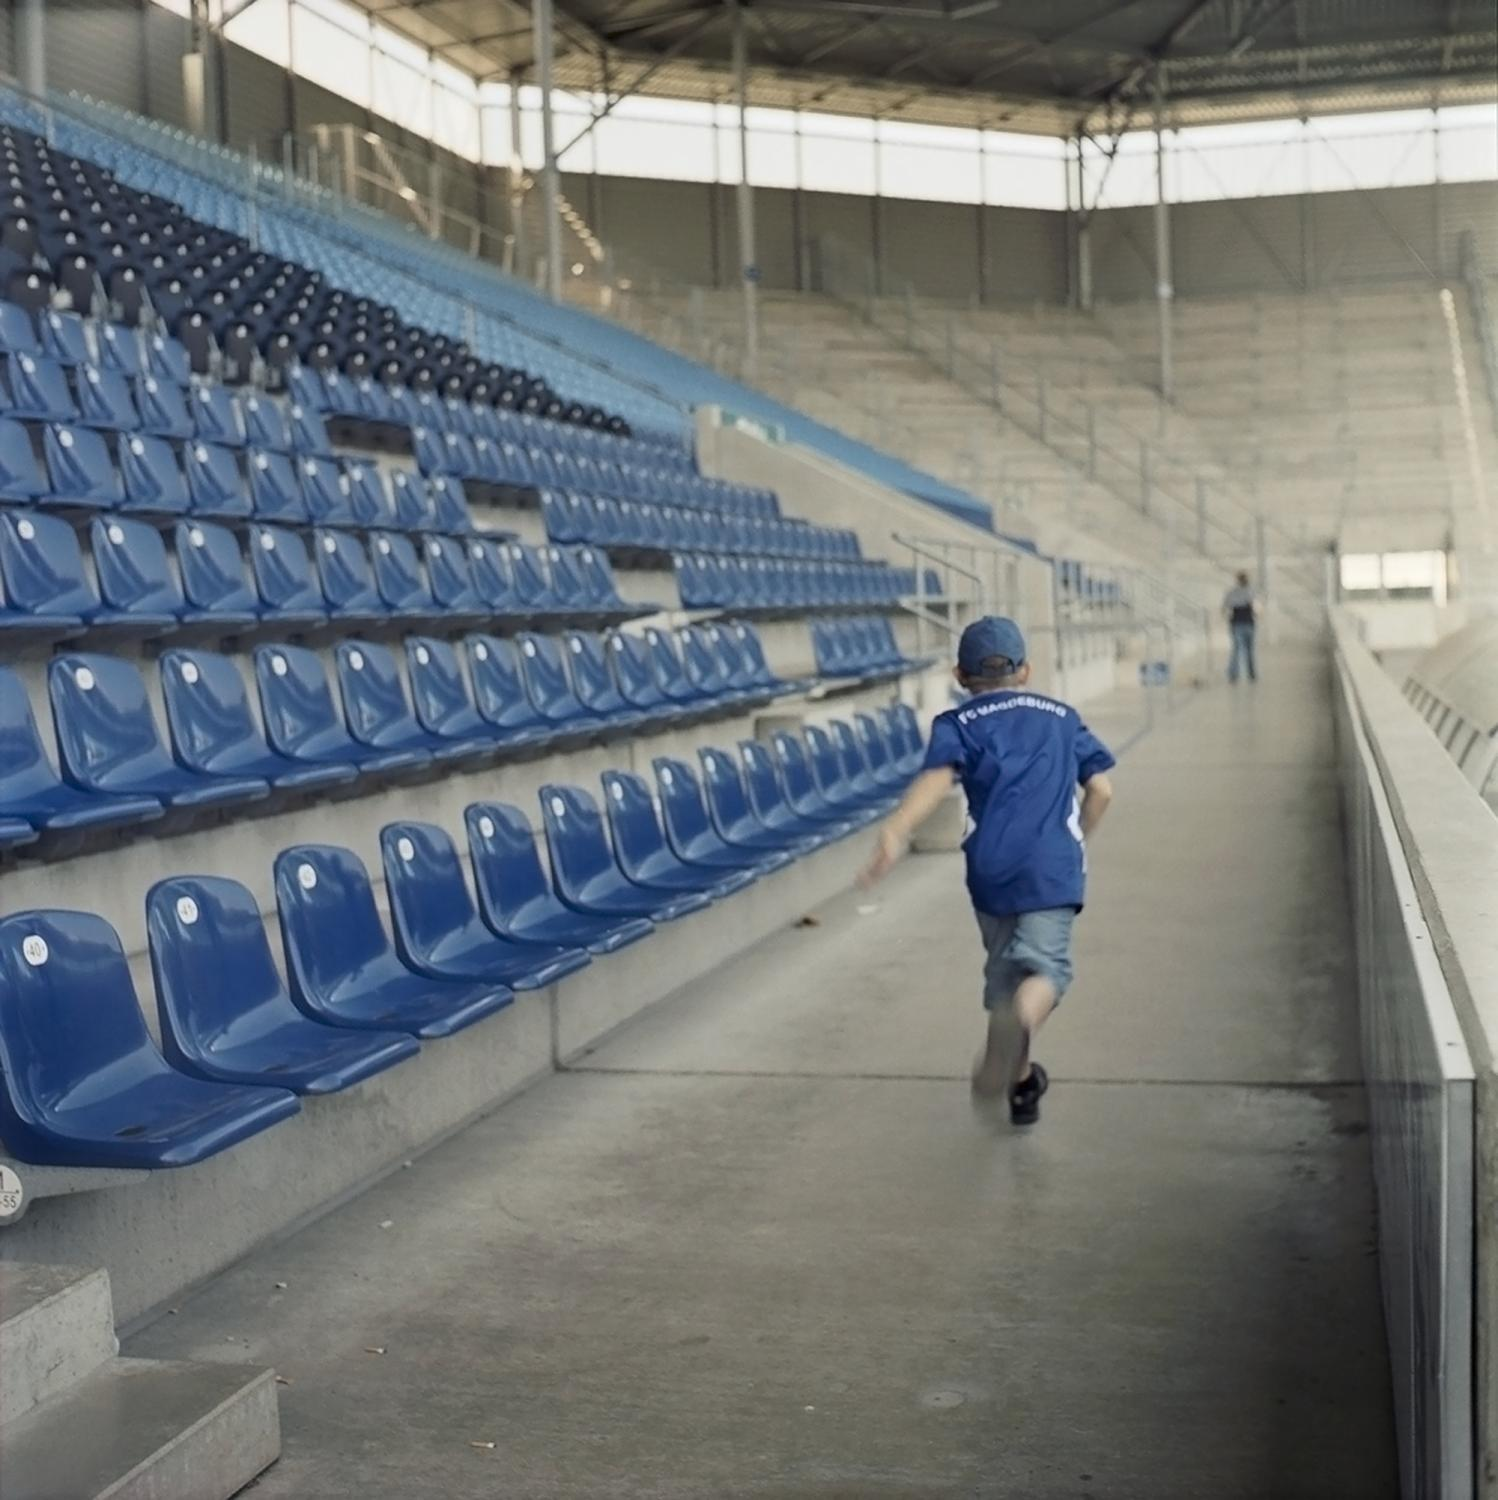 A child wearing a tricot of the 1. FC Magdeburg runs through the seats in the emtpy stadium after a game in Magdeburg.